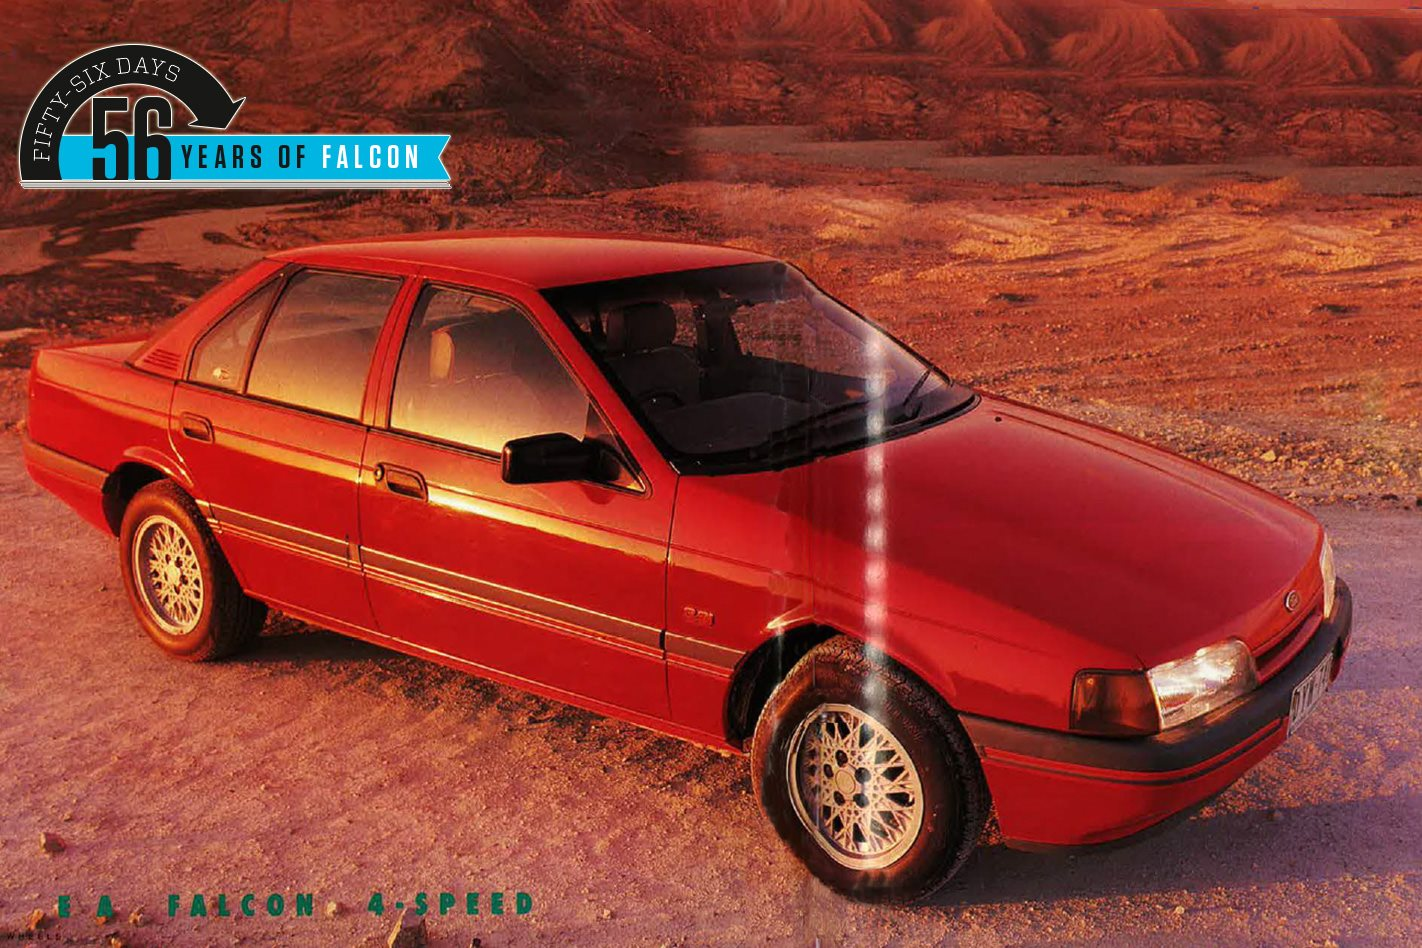 1989 Ford Falcon Ea Series Ii Review